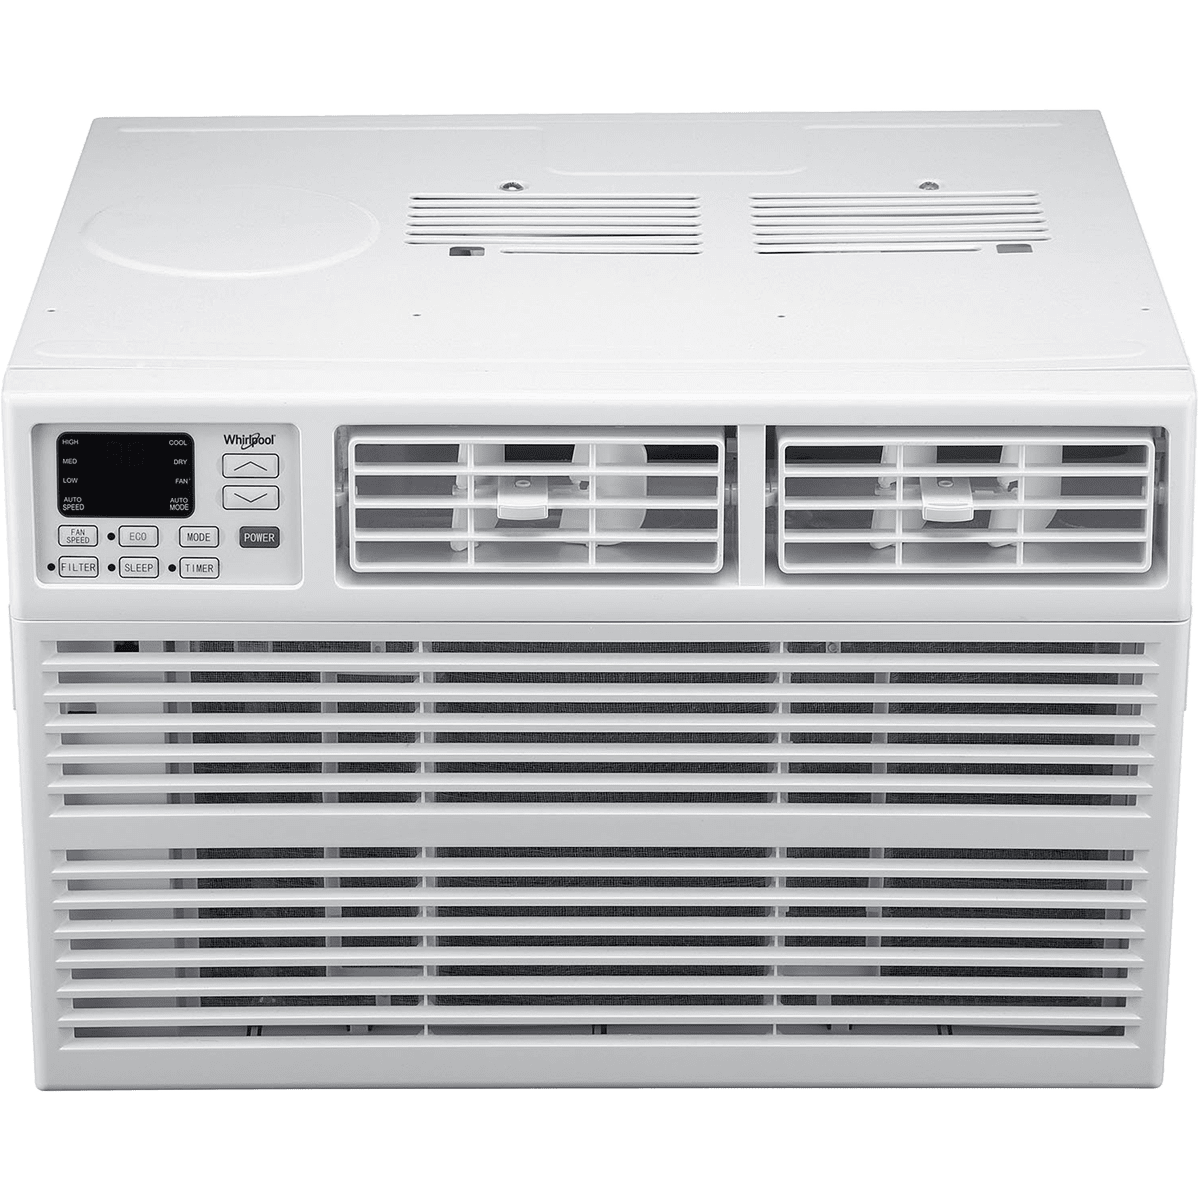 Whirlpool 10000 BTU Window Air Conditioner with Electronic Controls  WHAW101BW